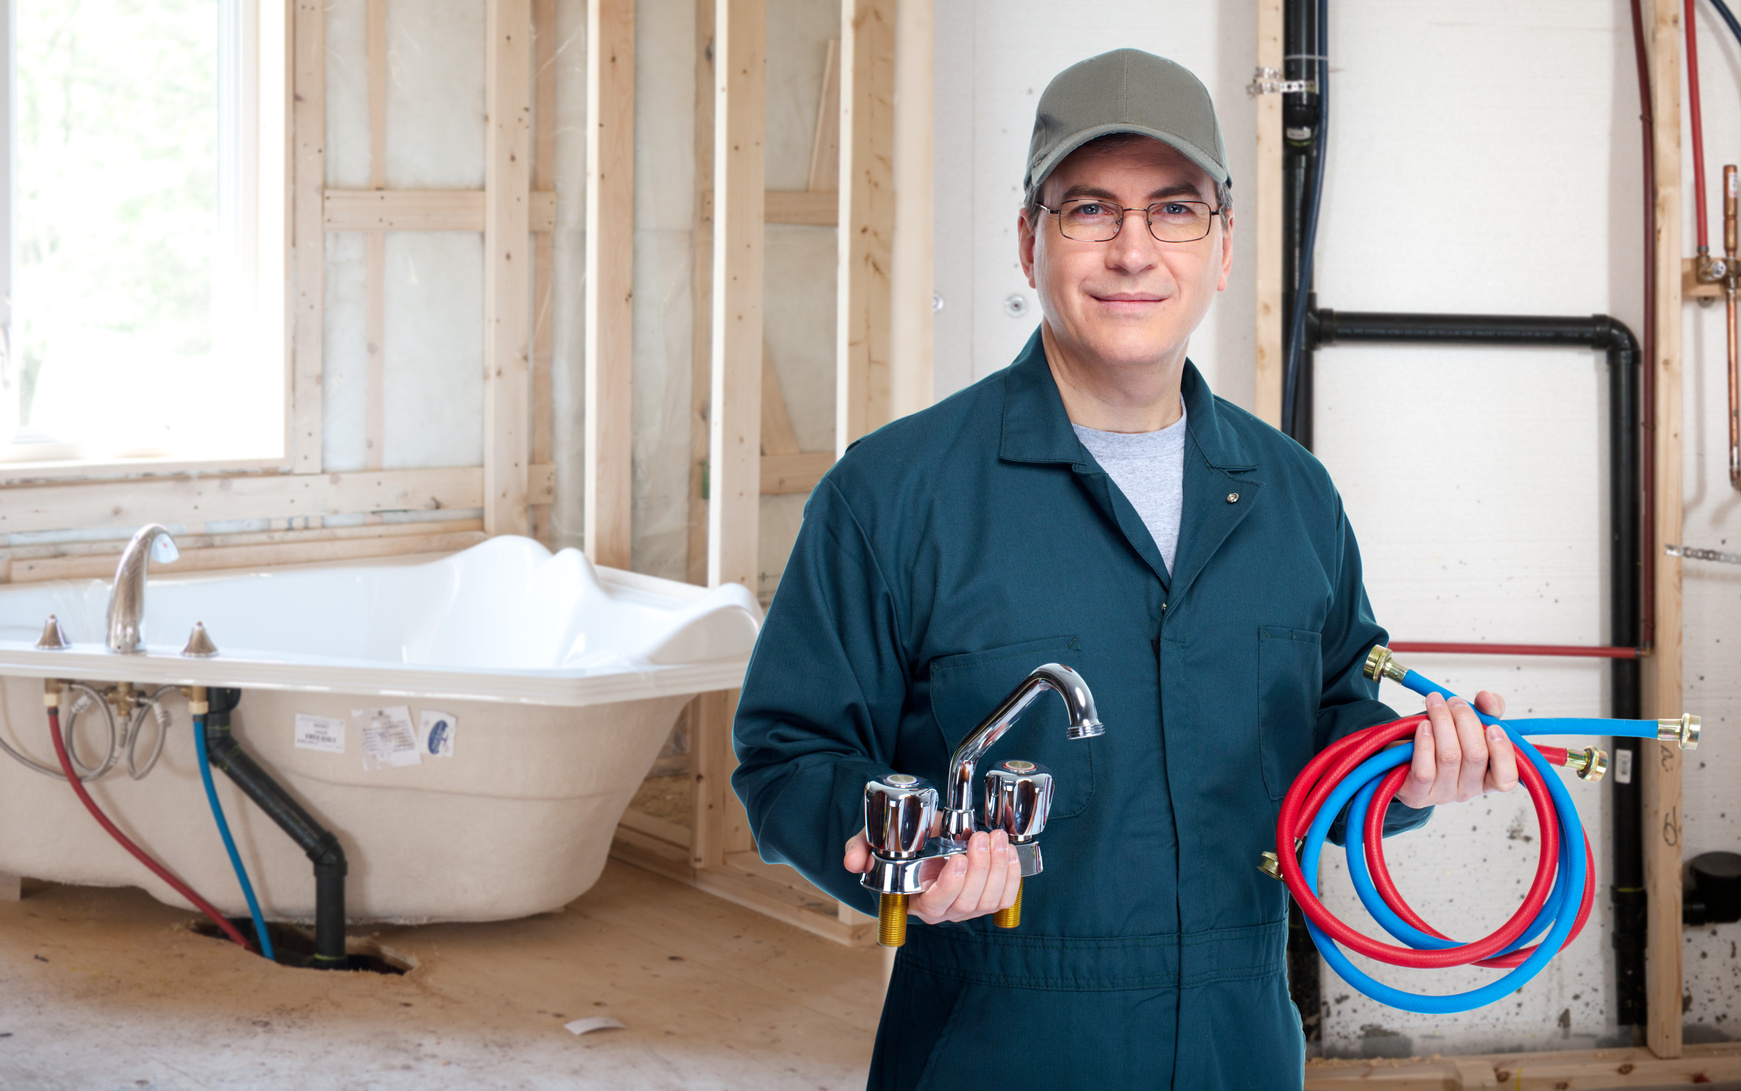 Plumber with faucet.